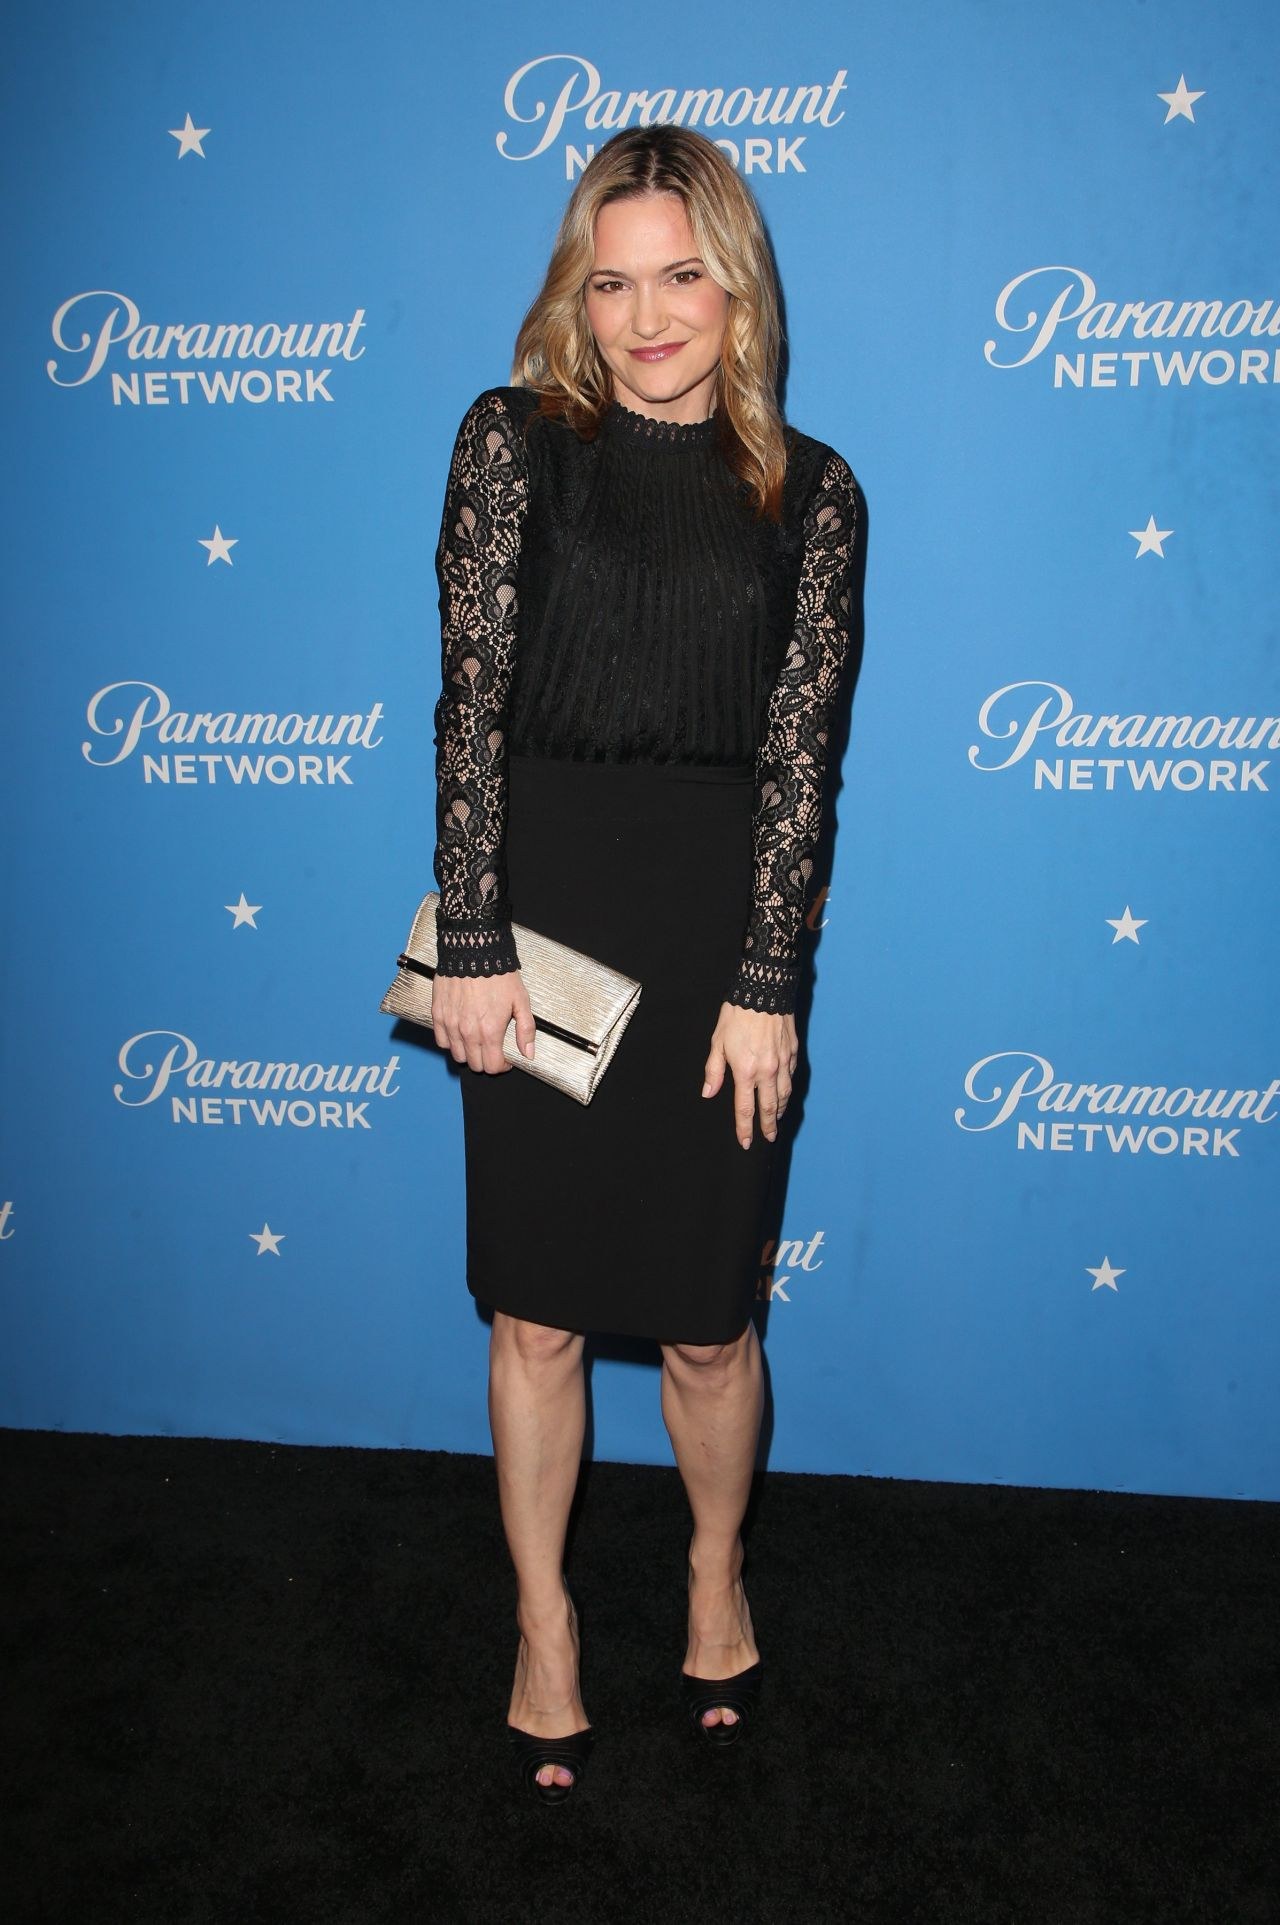 Victoria Pratt Paramount Network Launch Party In La